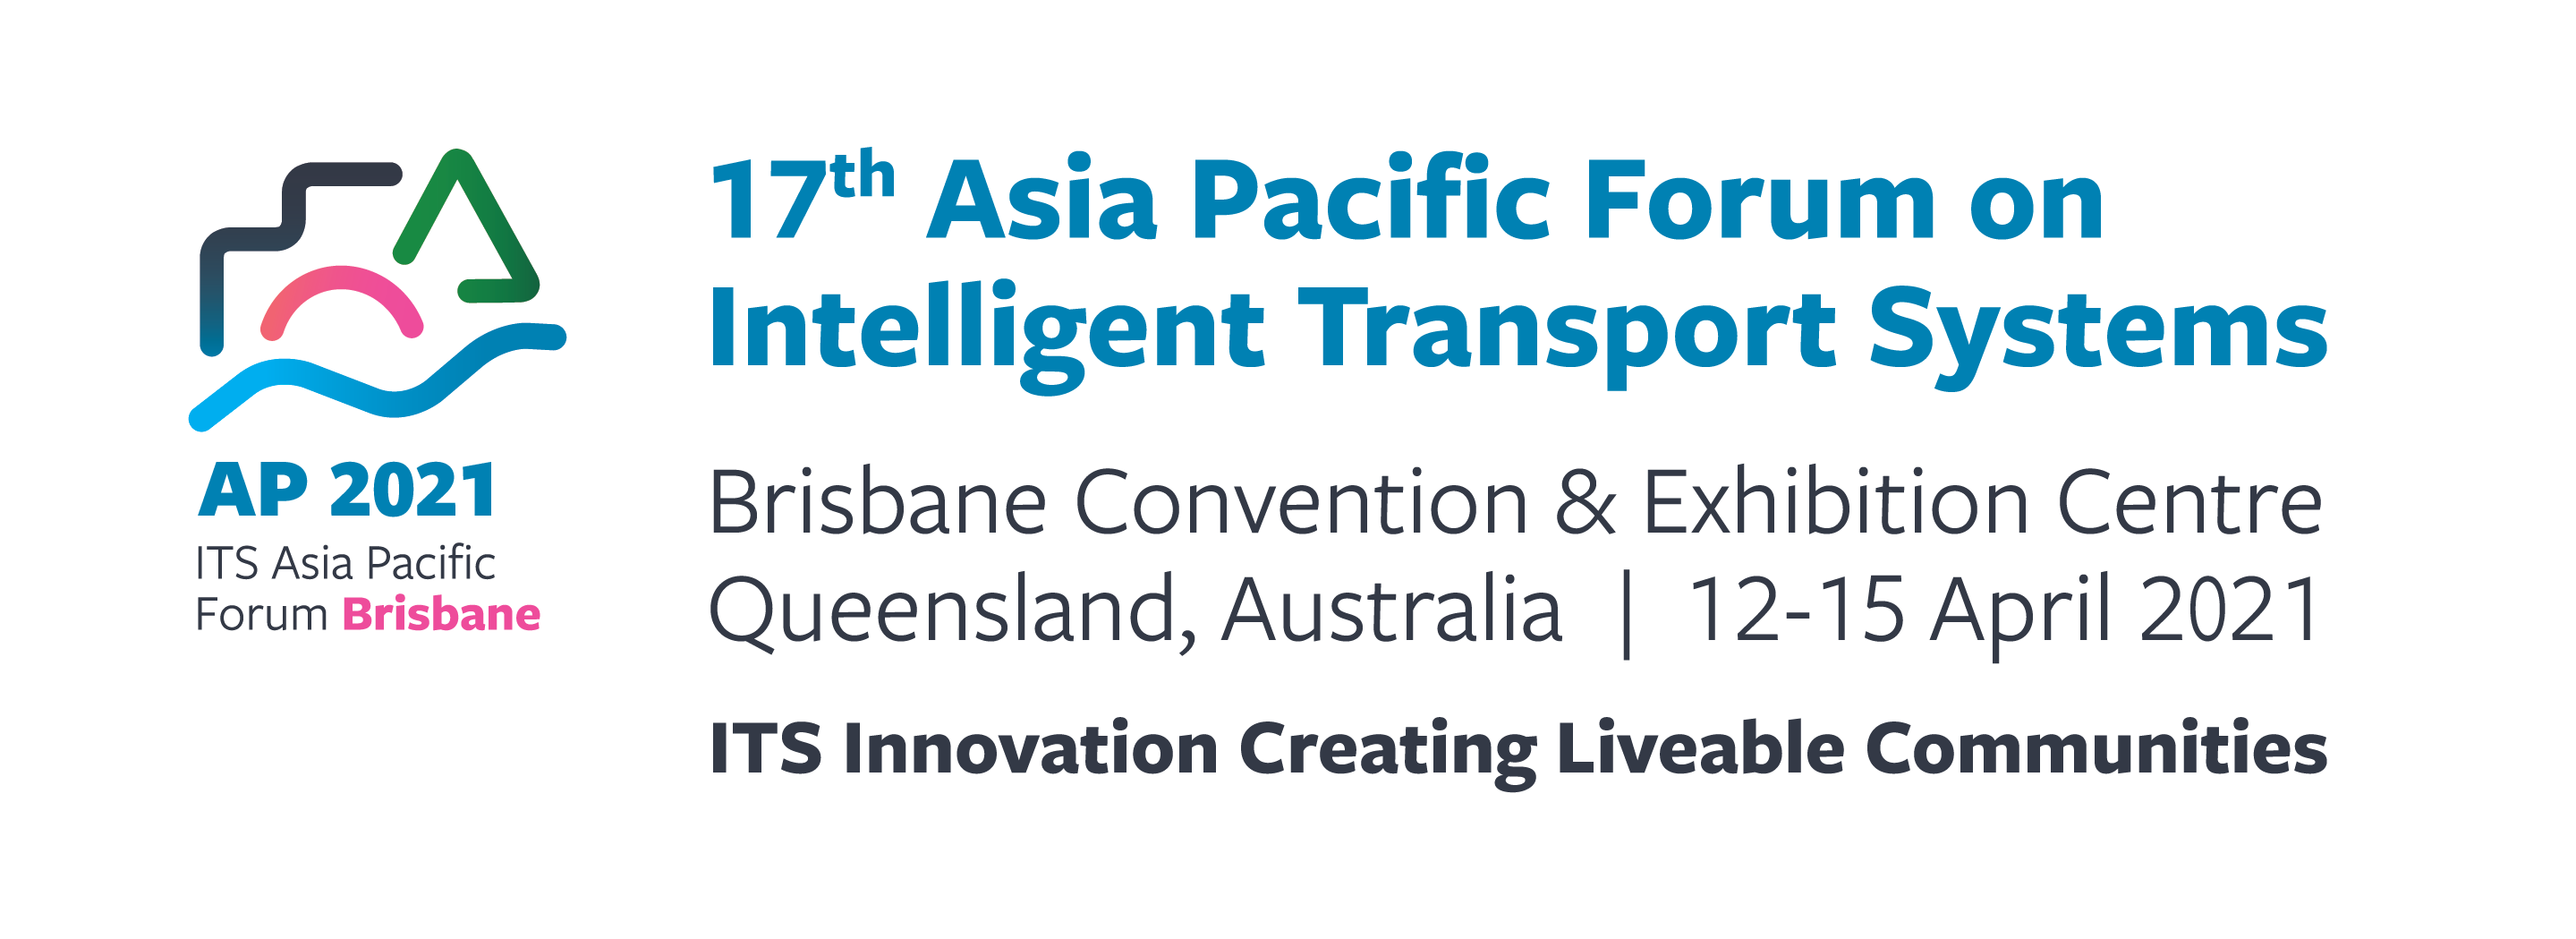 Intelligent Transport Forum 2021 Australia